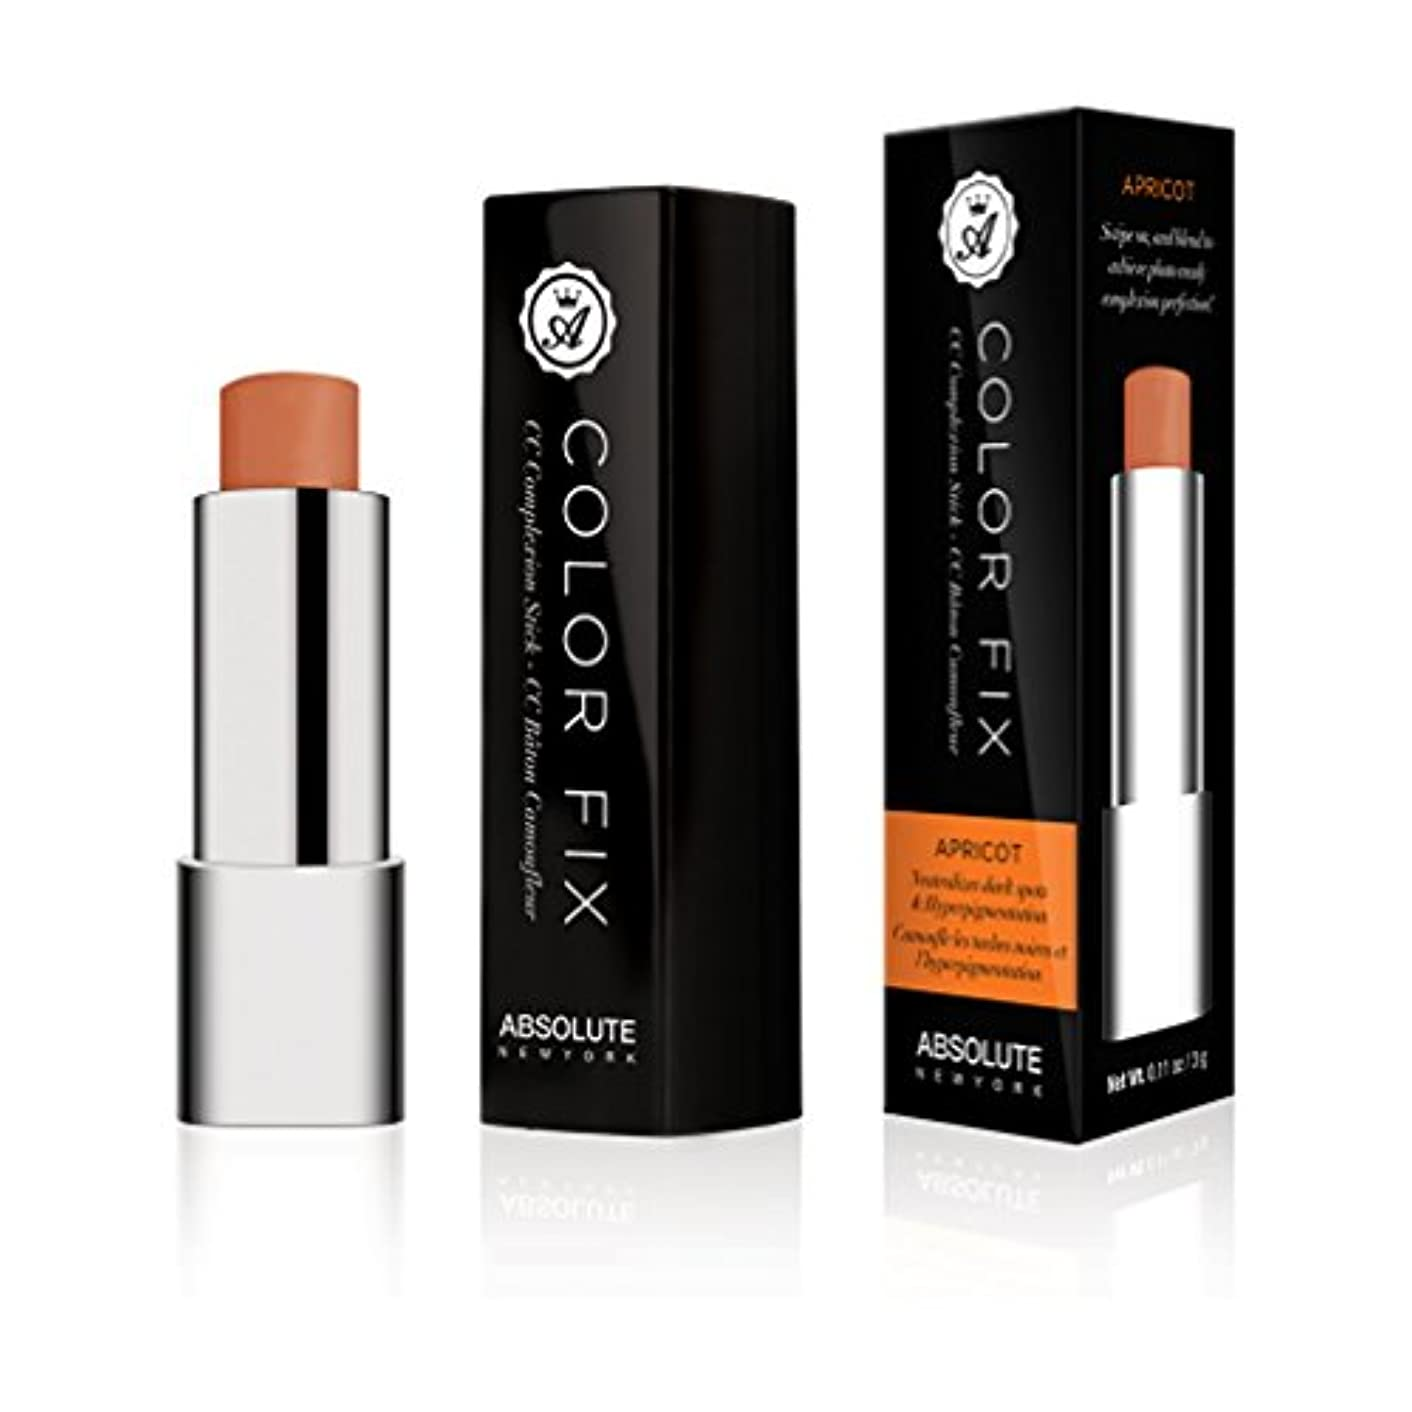 付添人淡いニュース(3 Pack) ABSOLUTE Color Fix Complexion Stick - Apricot (並行輸入品)